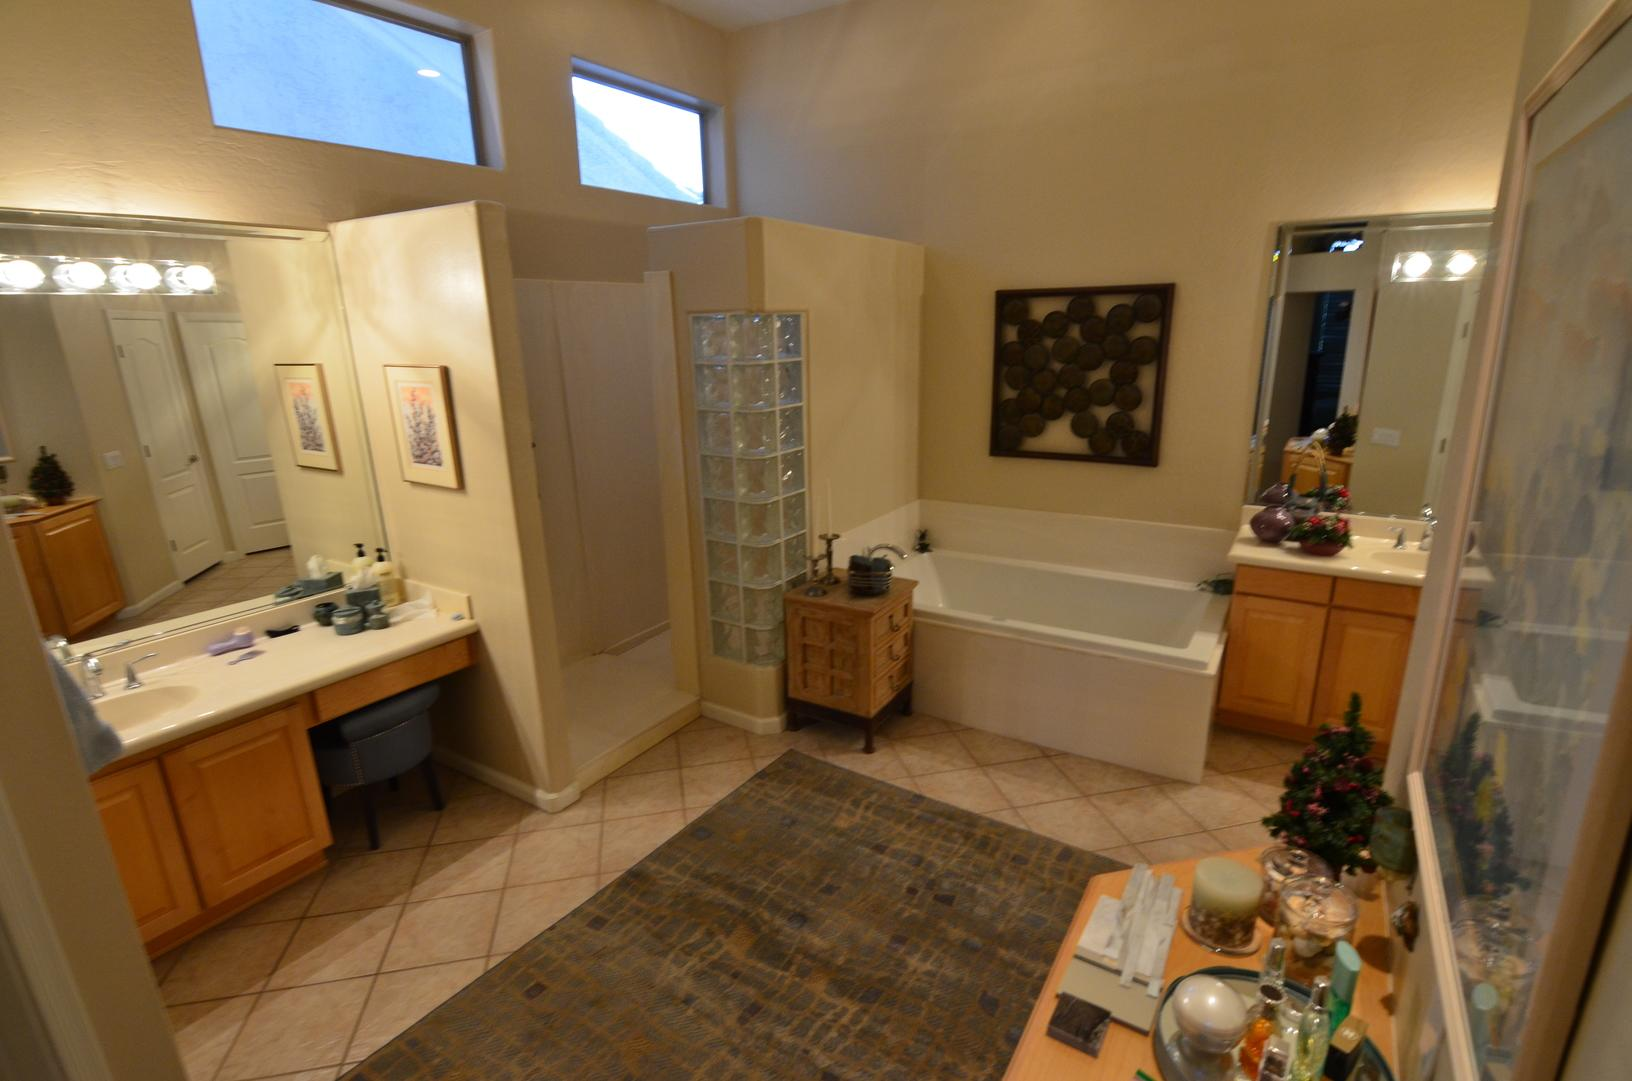 Complete Masterbath Remodel Project in Scottsdale, AZ - Before Photo